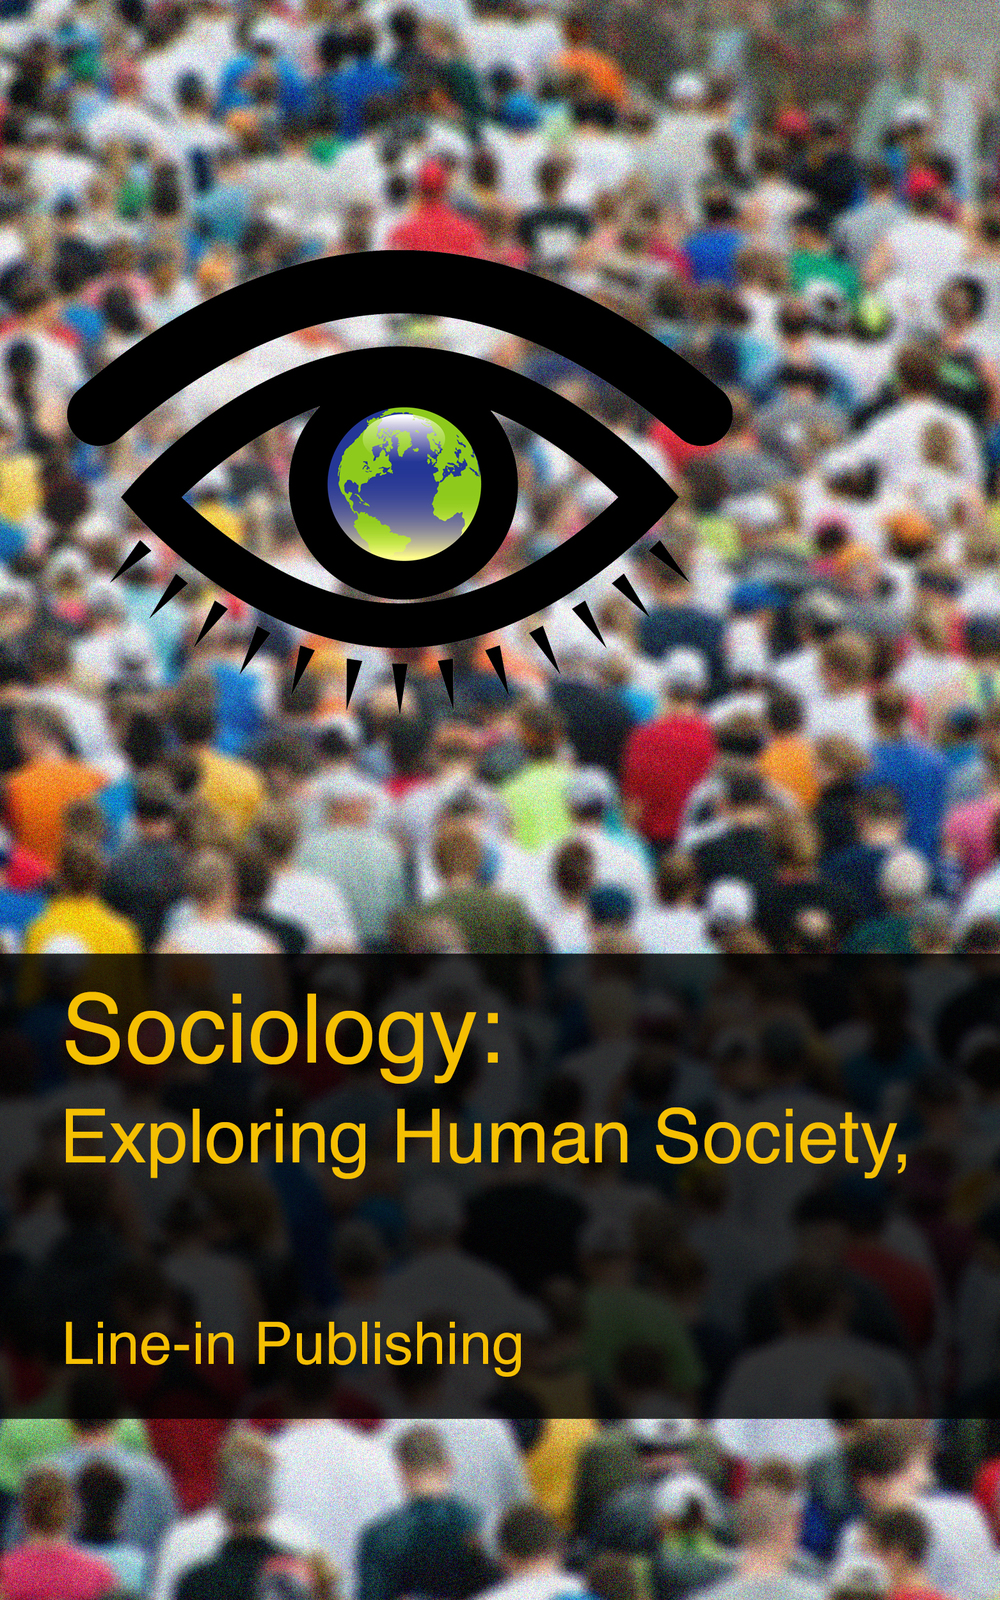 cover_sociology_full.jpg